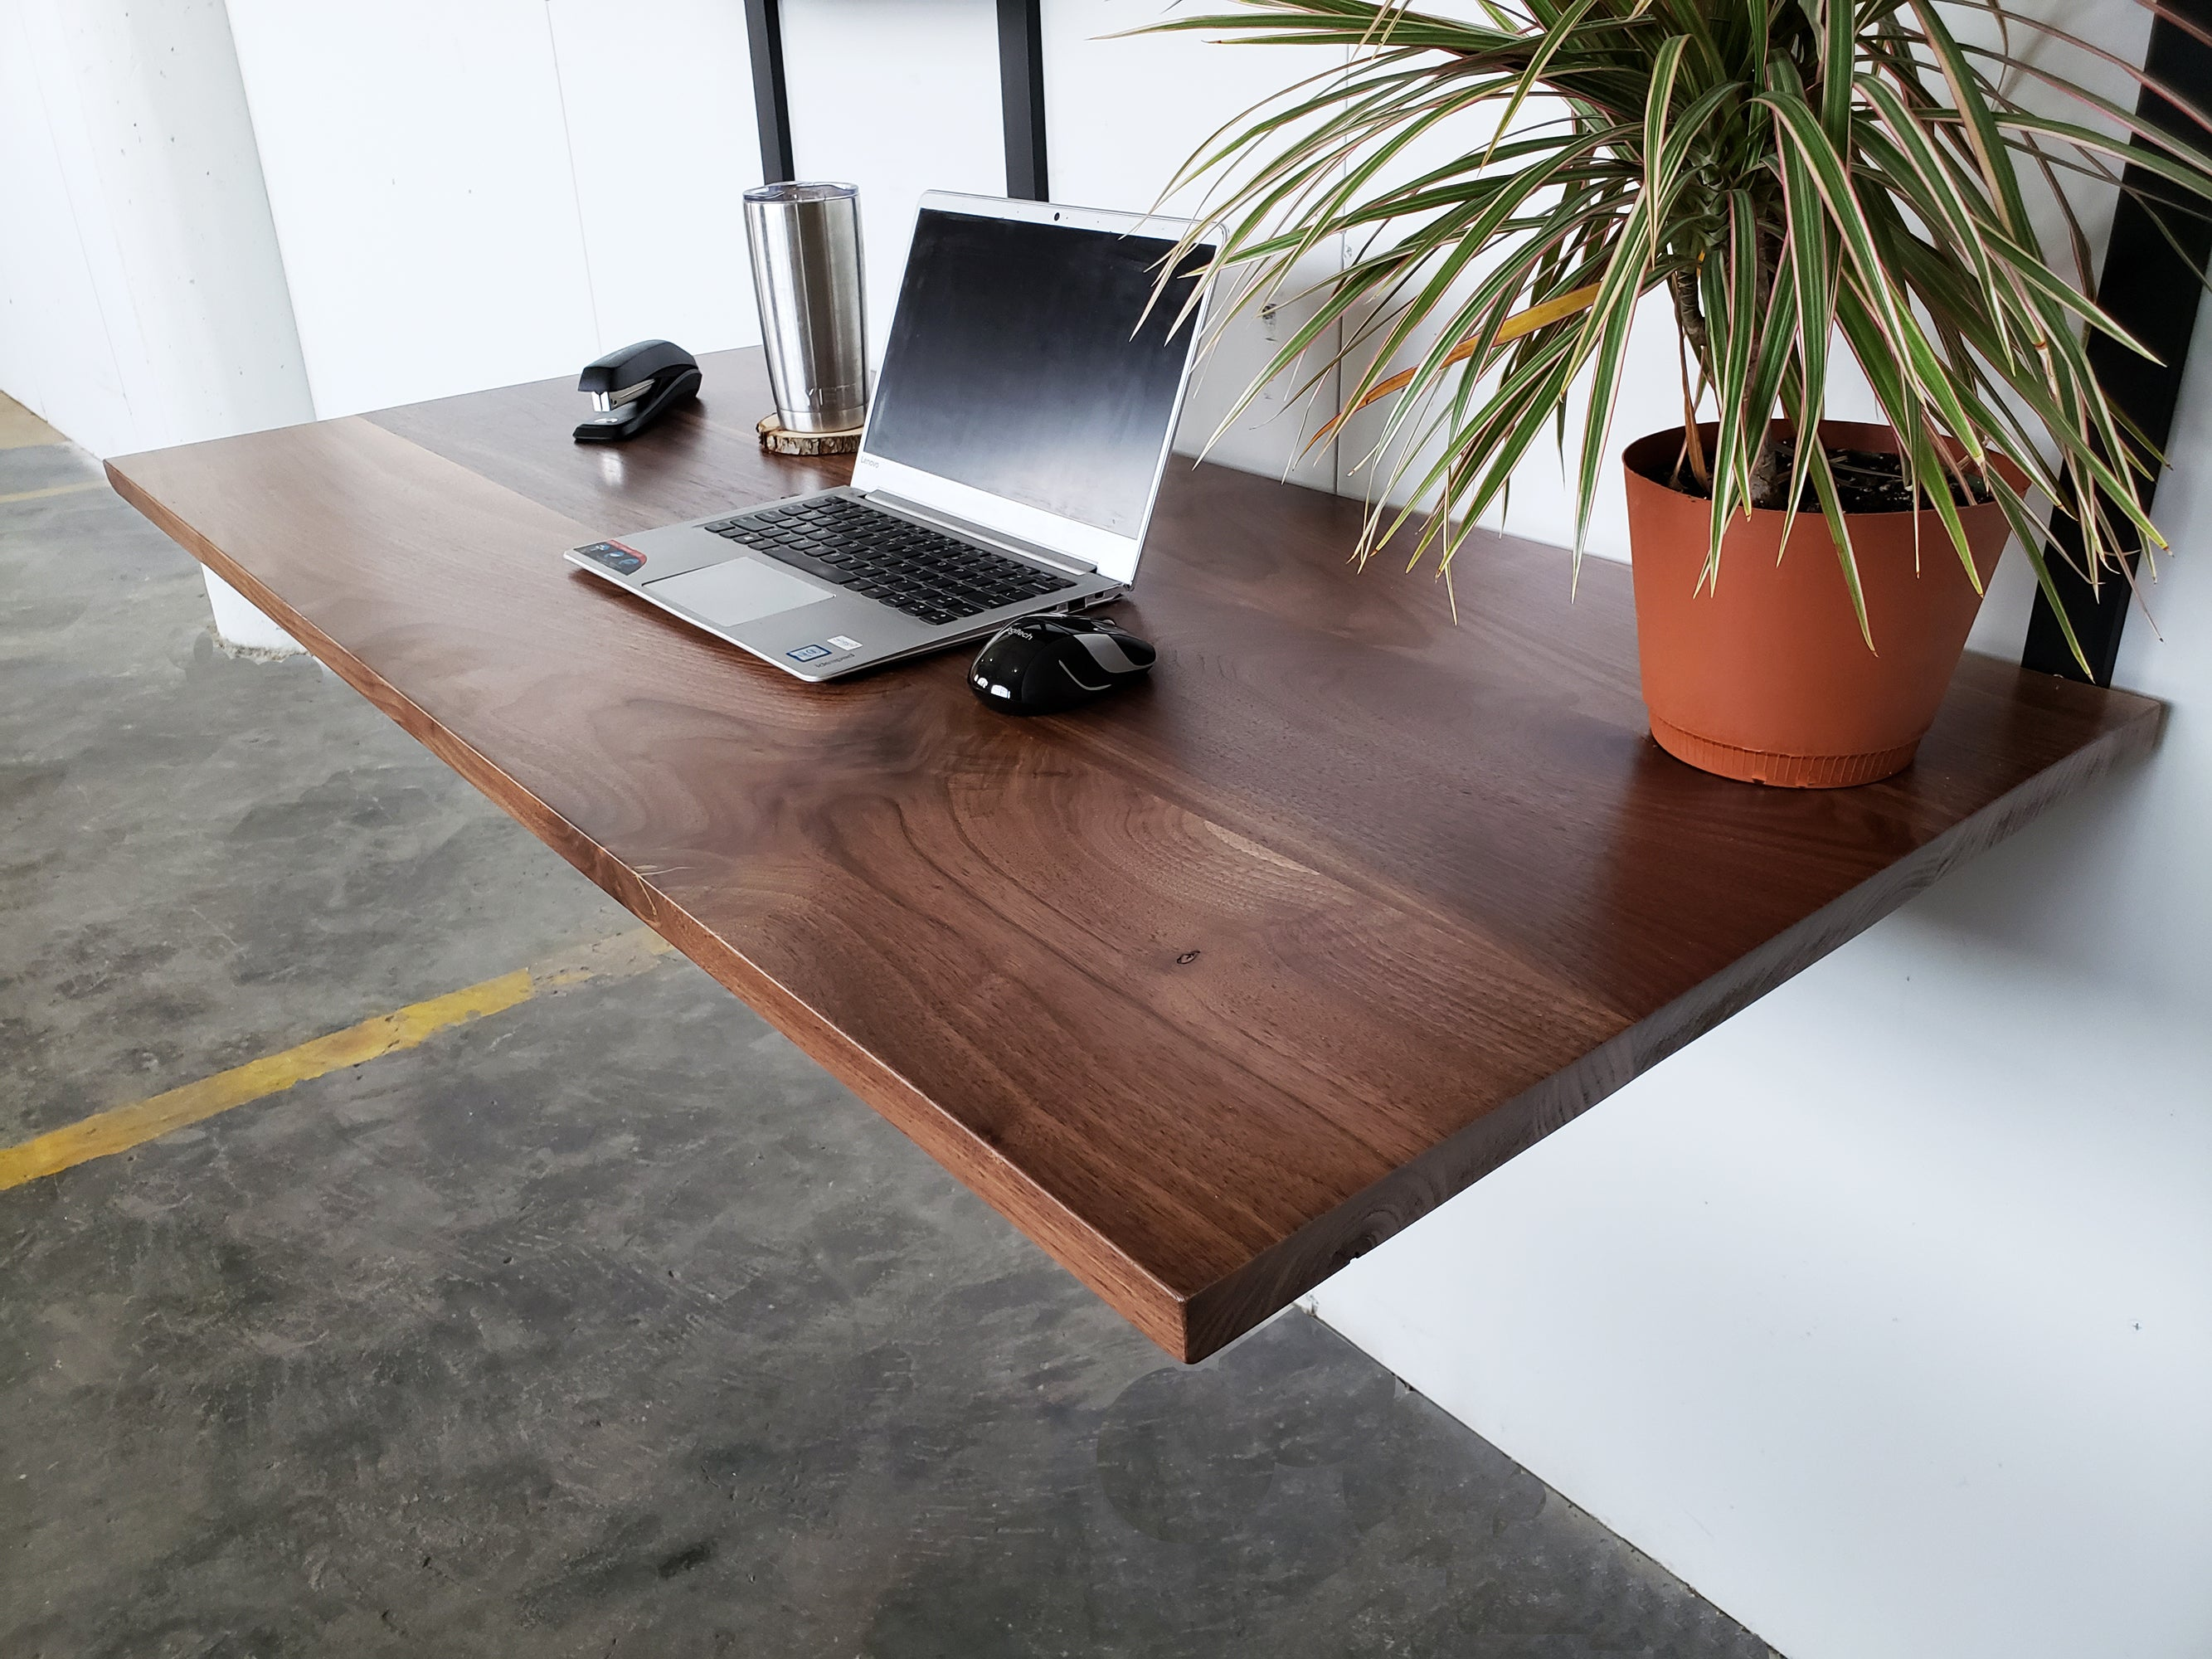 Desk - blackwalnut - modern farmhouse desk - minimal-furniture-apartment-office